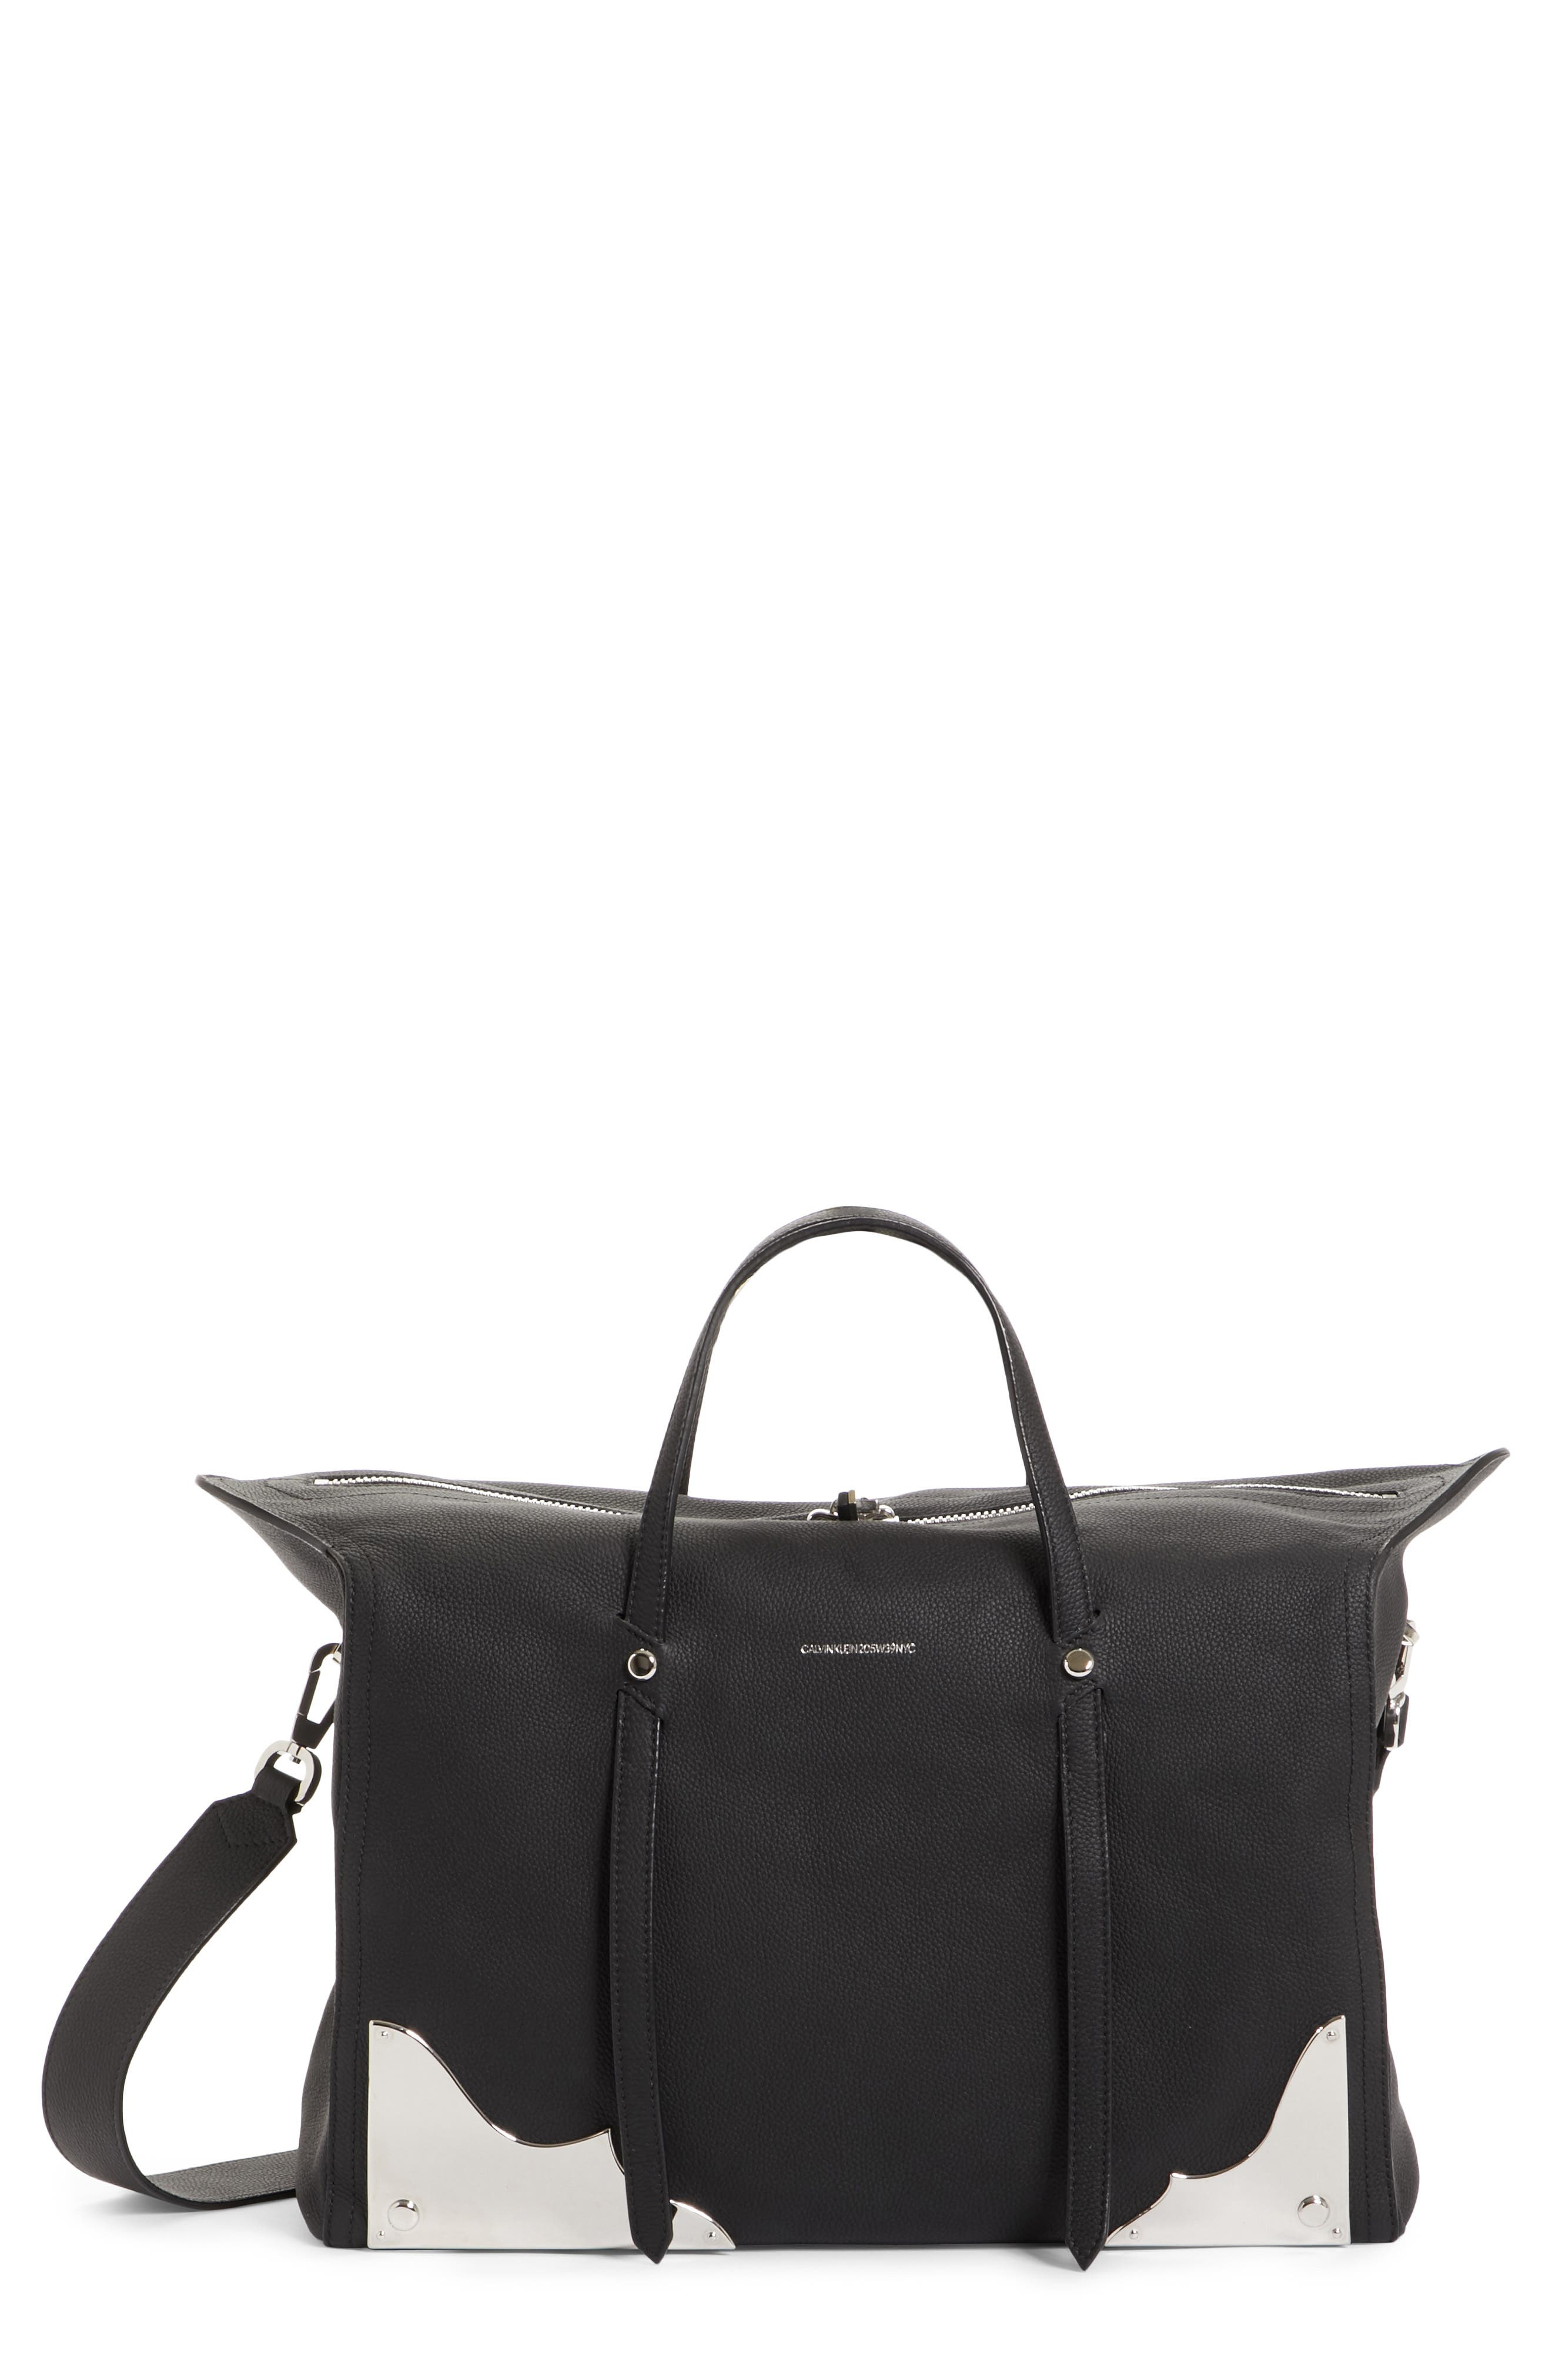 CALVIN KLEIN 205W39NYC Medium Calfskin Satchel